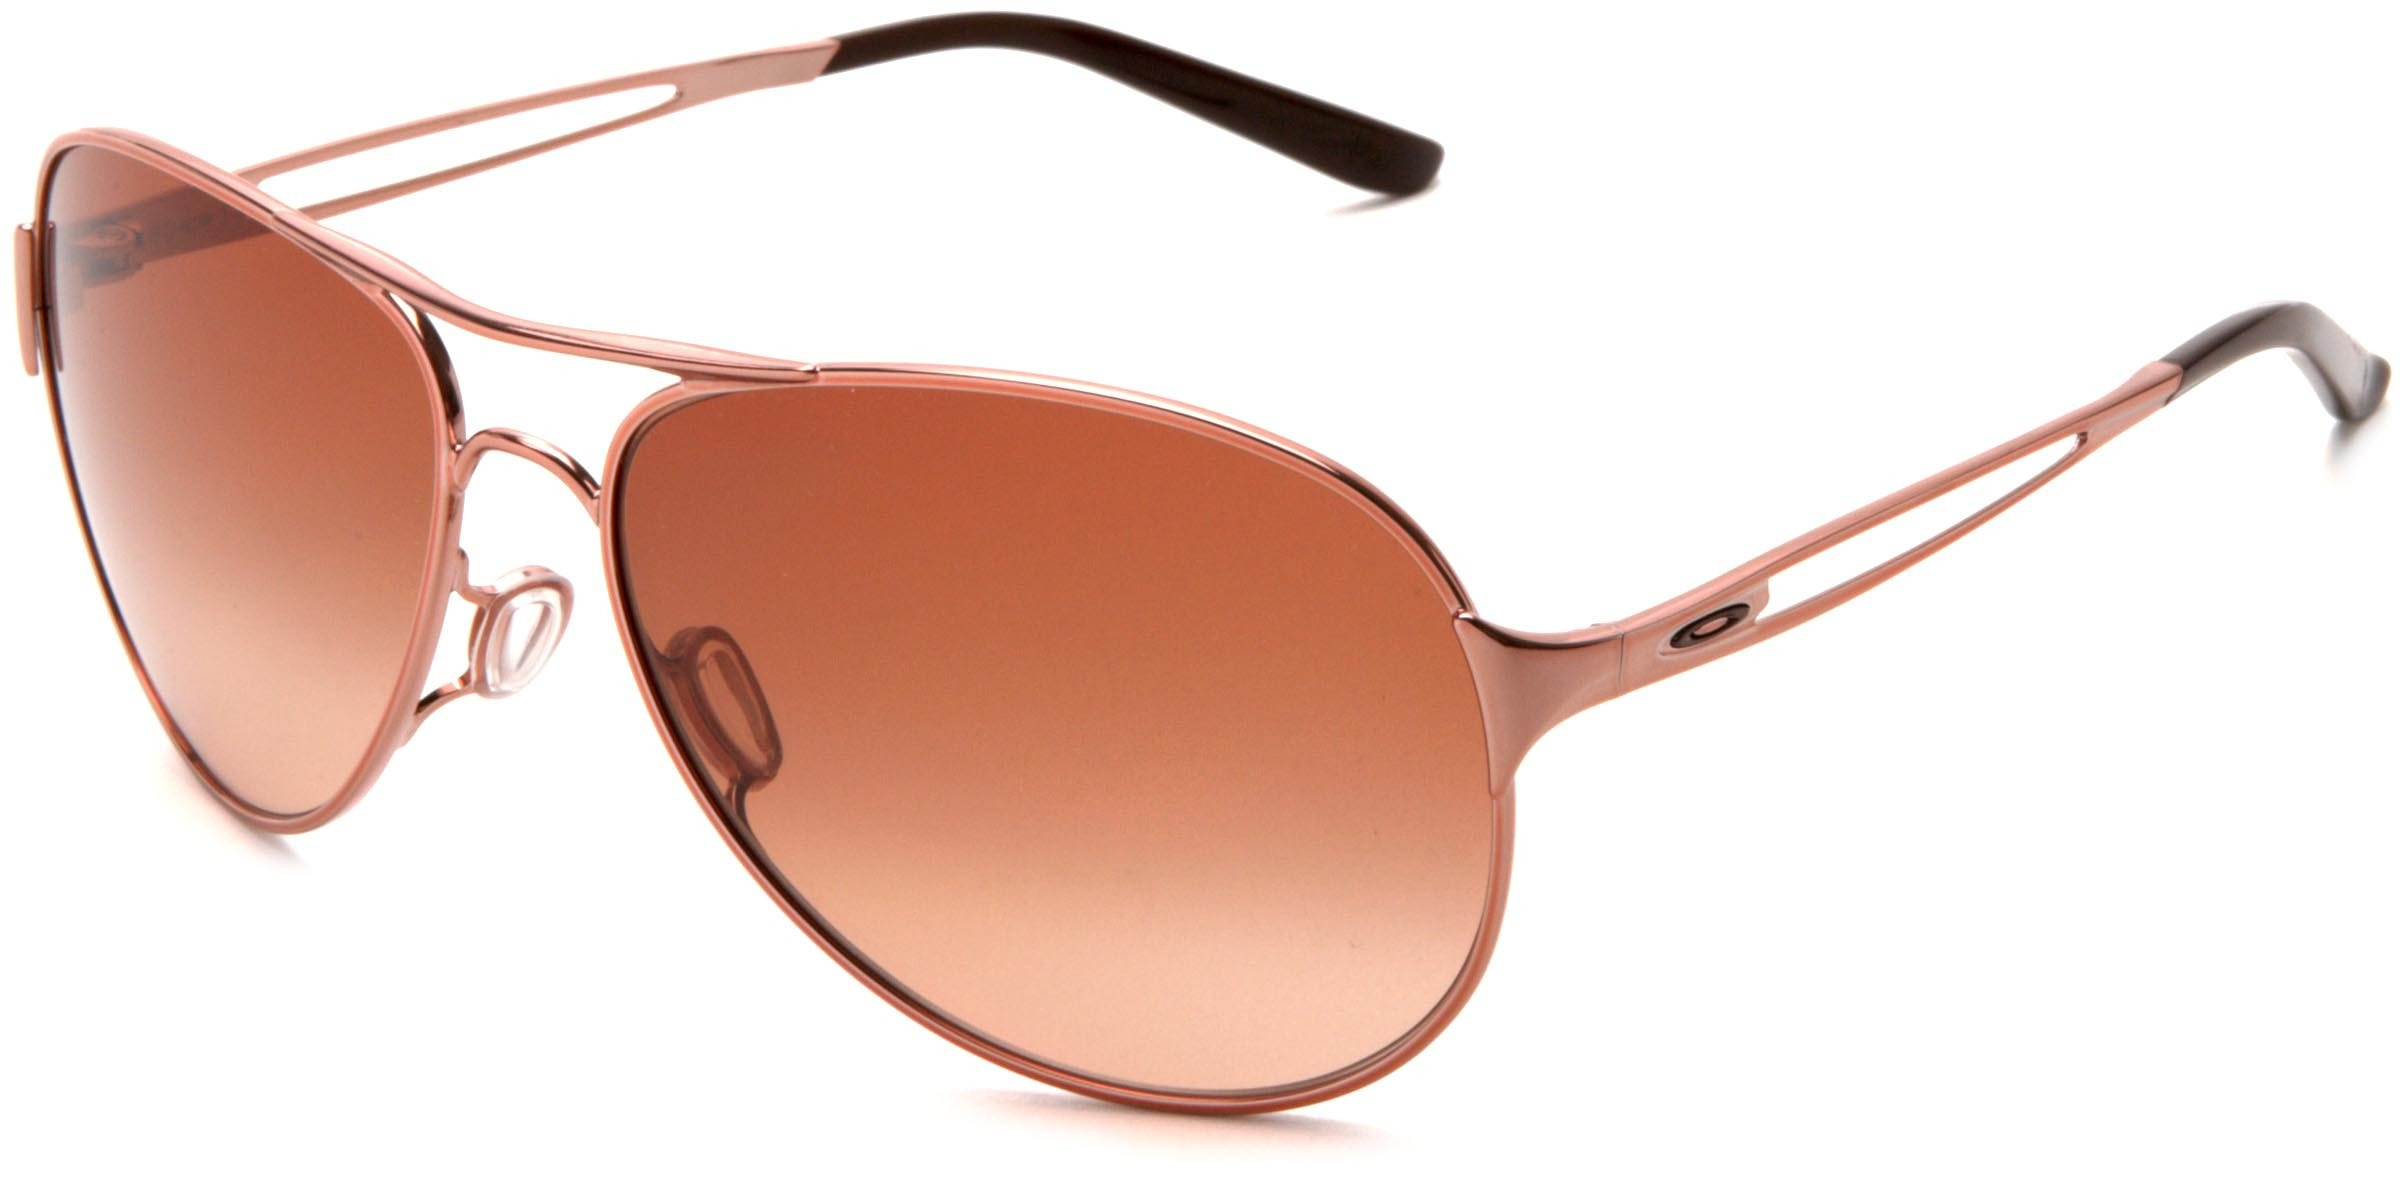 Oakley Women's Caveat Aviator Sunglasses,Rose Gold Frame/Brown Gradient Lens,One Size